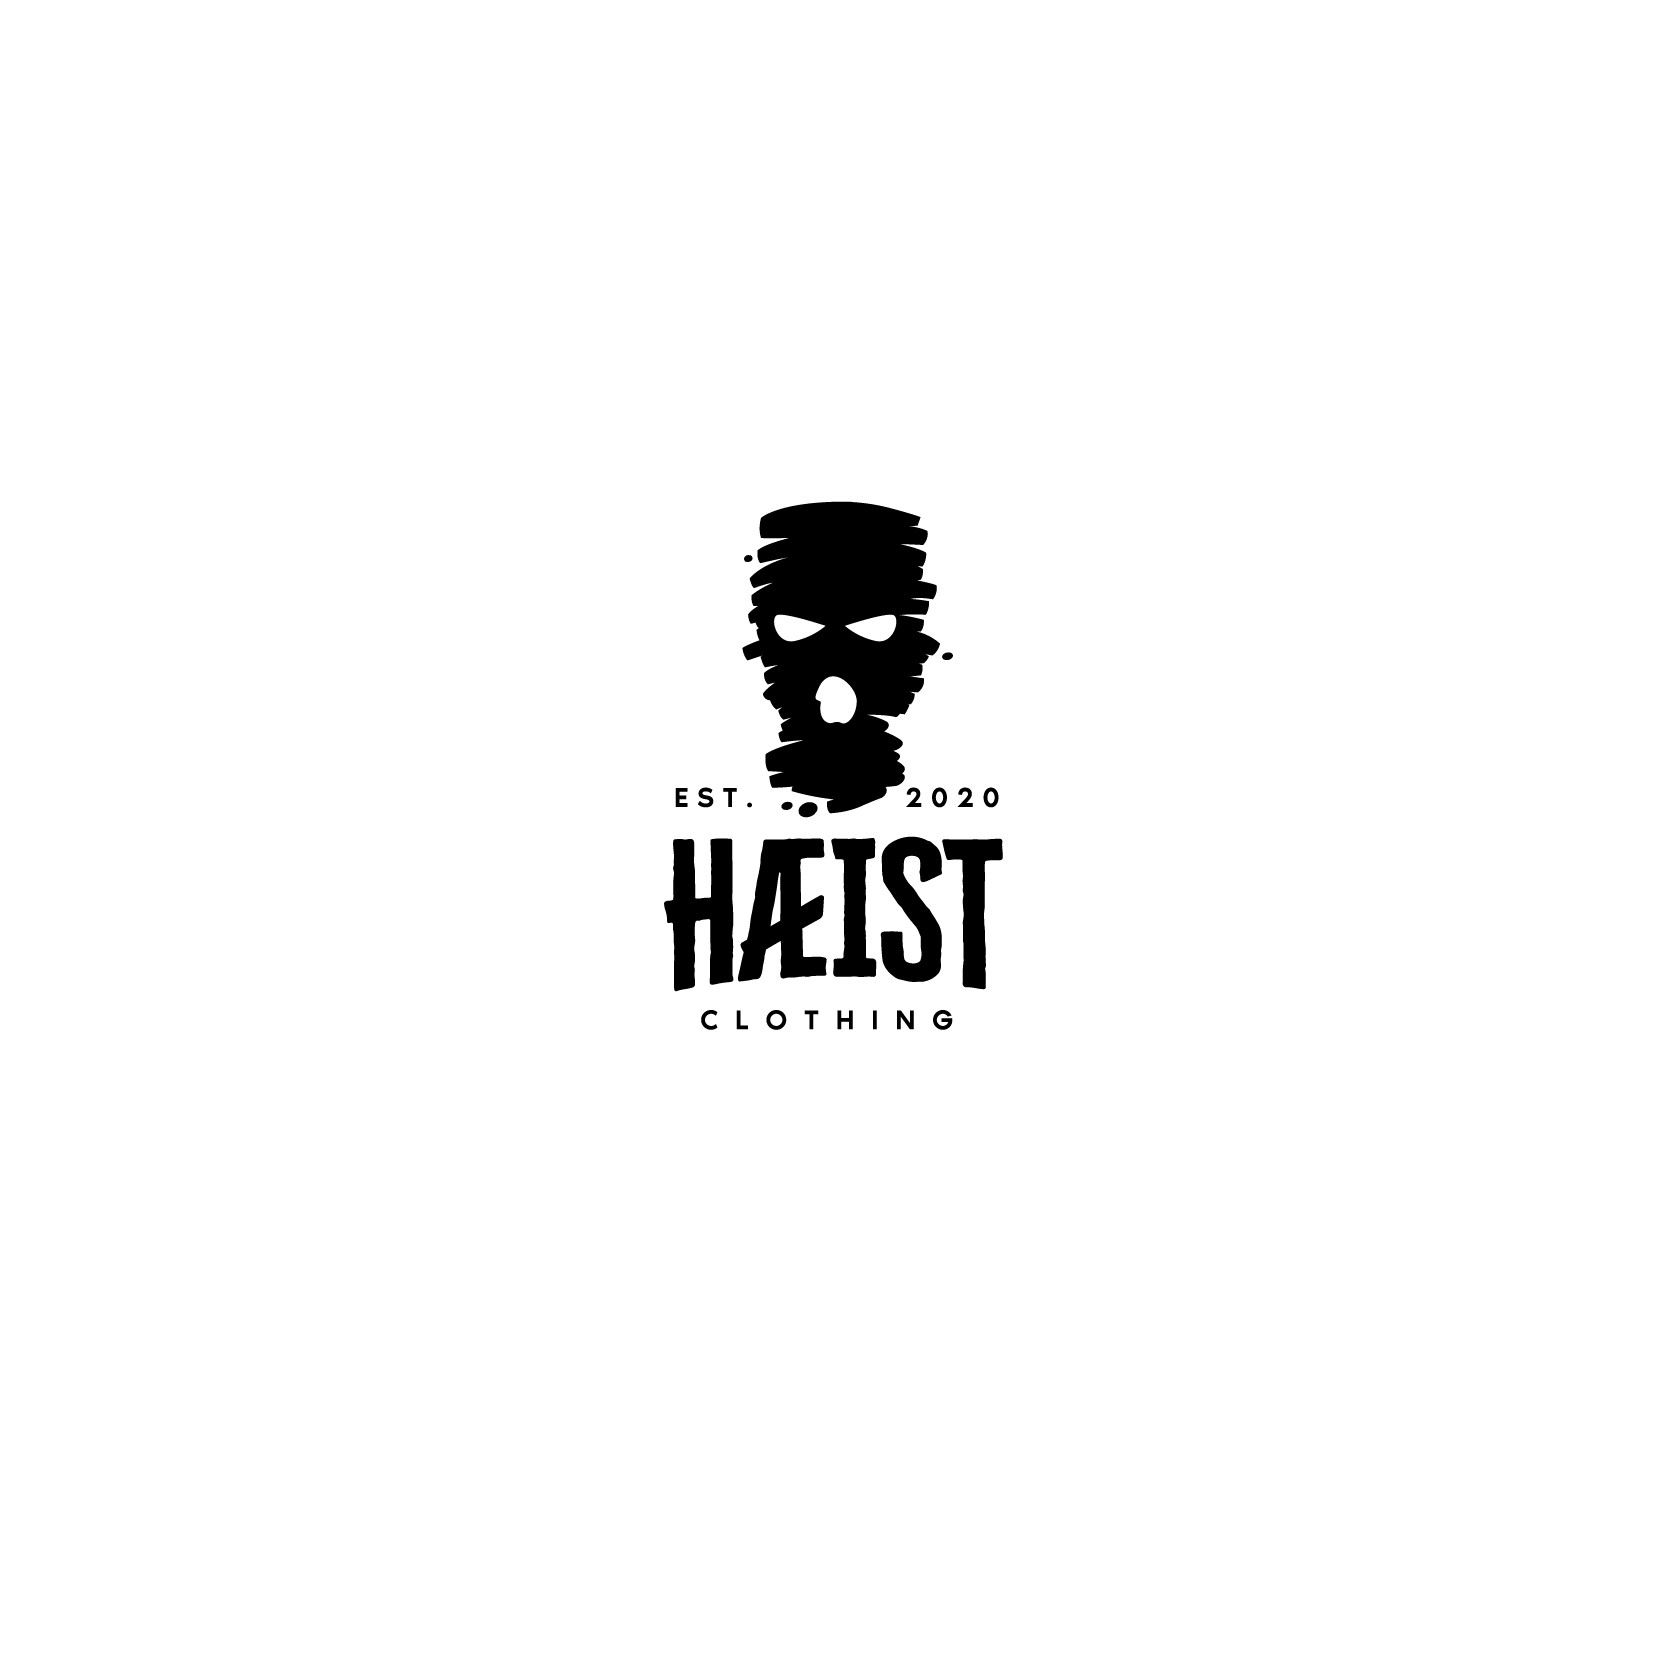 Streetwear Fashion Brand looking for a recognizable Logo